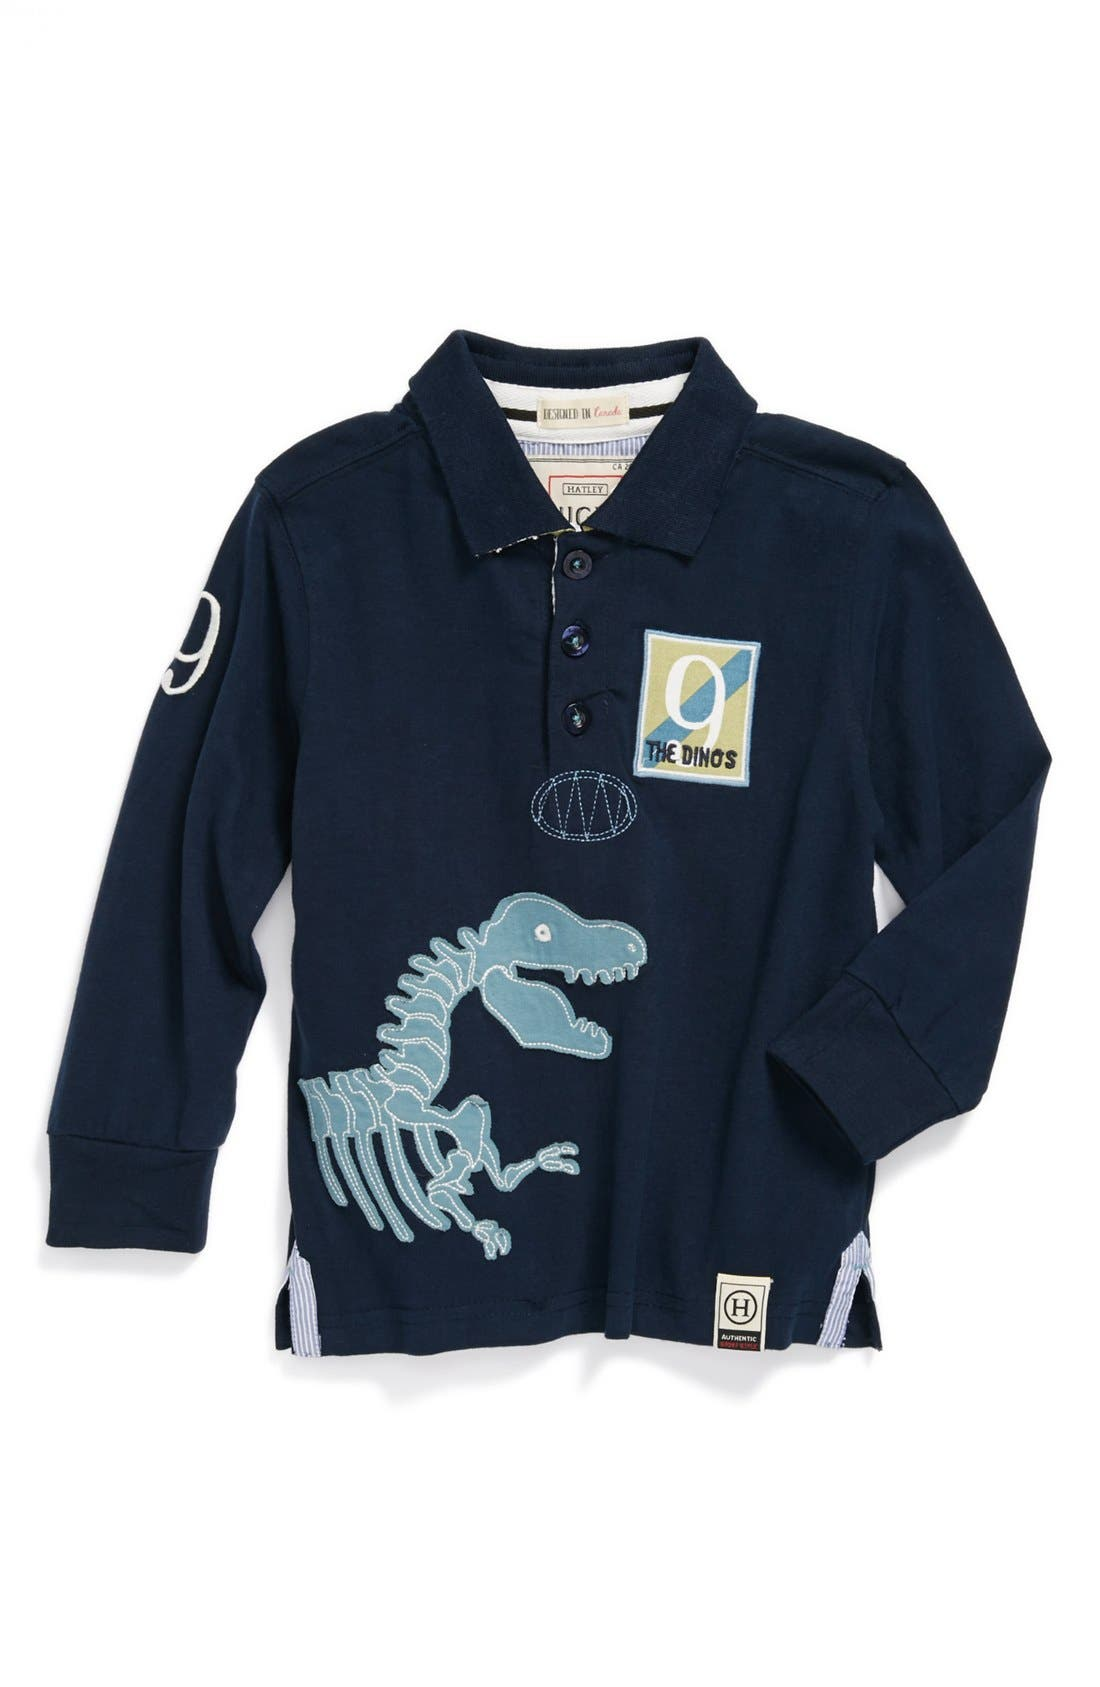 Main Image - Hatley 'Dino' Rugby Shirt (Toddler Boys)